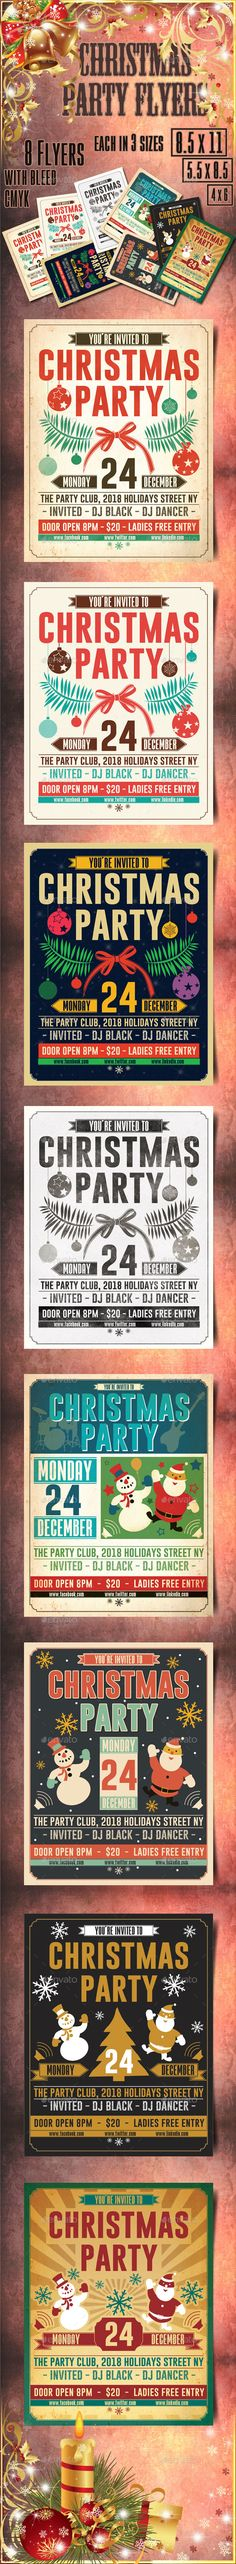 Buy Christmas Retro Party Flyer by on GraphicRiver. 8 Retro Christmas party flyers which come in 3 sizes CMYK mode with bleed and – – All elem. Holidays Music, Holidays And Events, Retro Christmas, Holiday Fun, Christmas Flyer Template, Snowman Tree, Retro Party, Vintage Winter, Party Flyer